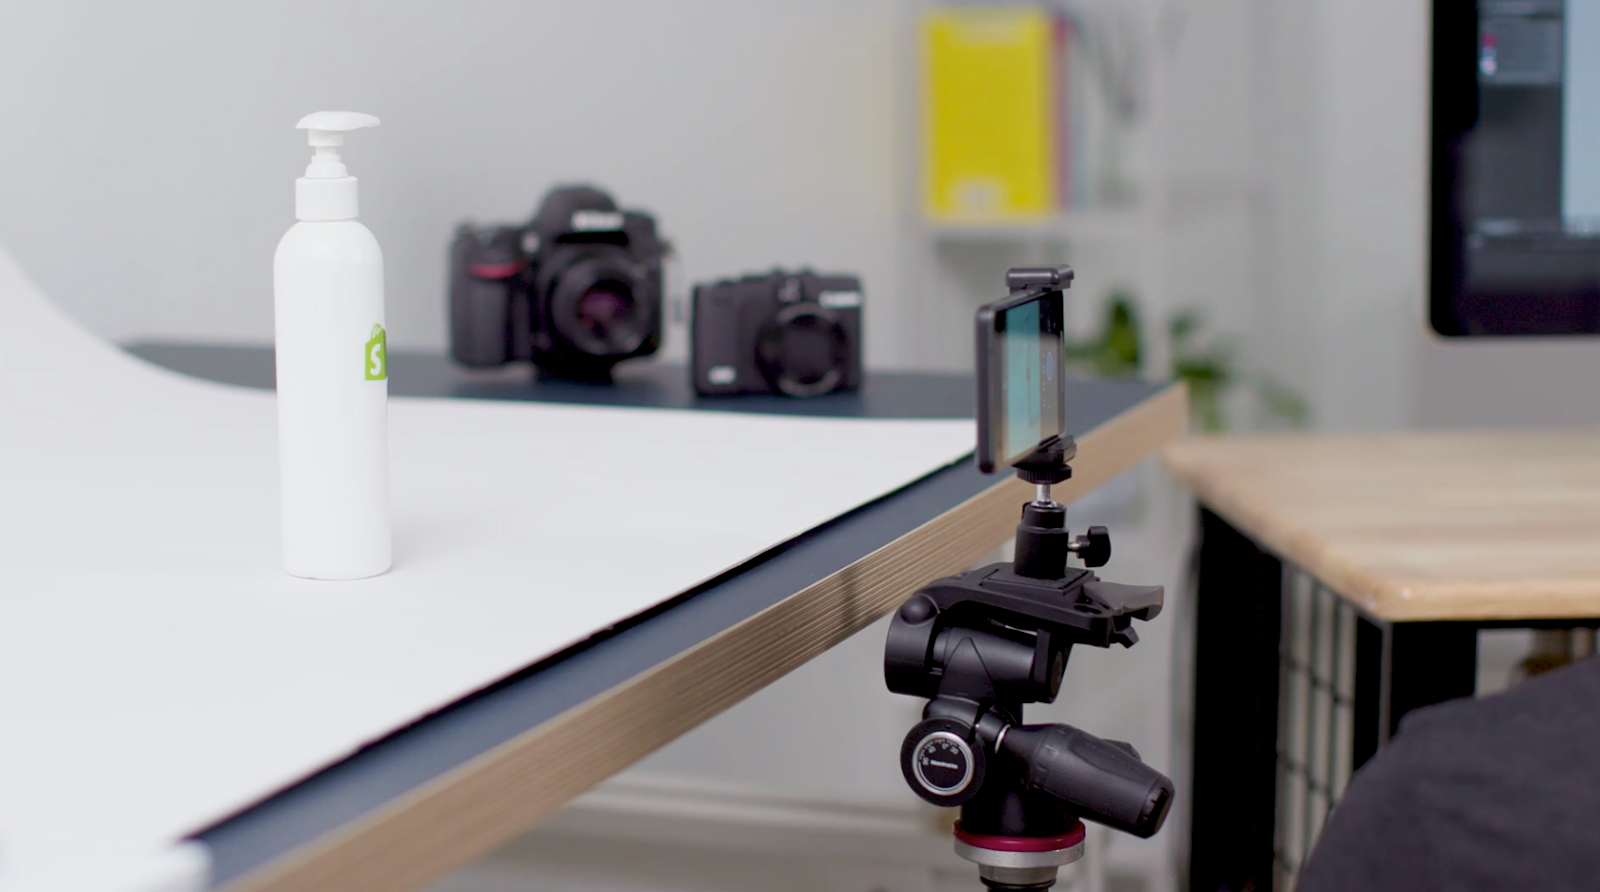 White backdrop for product photoshoot with smartphone